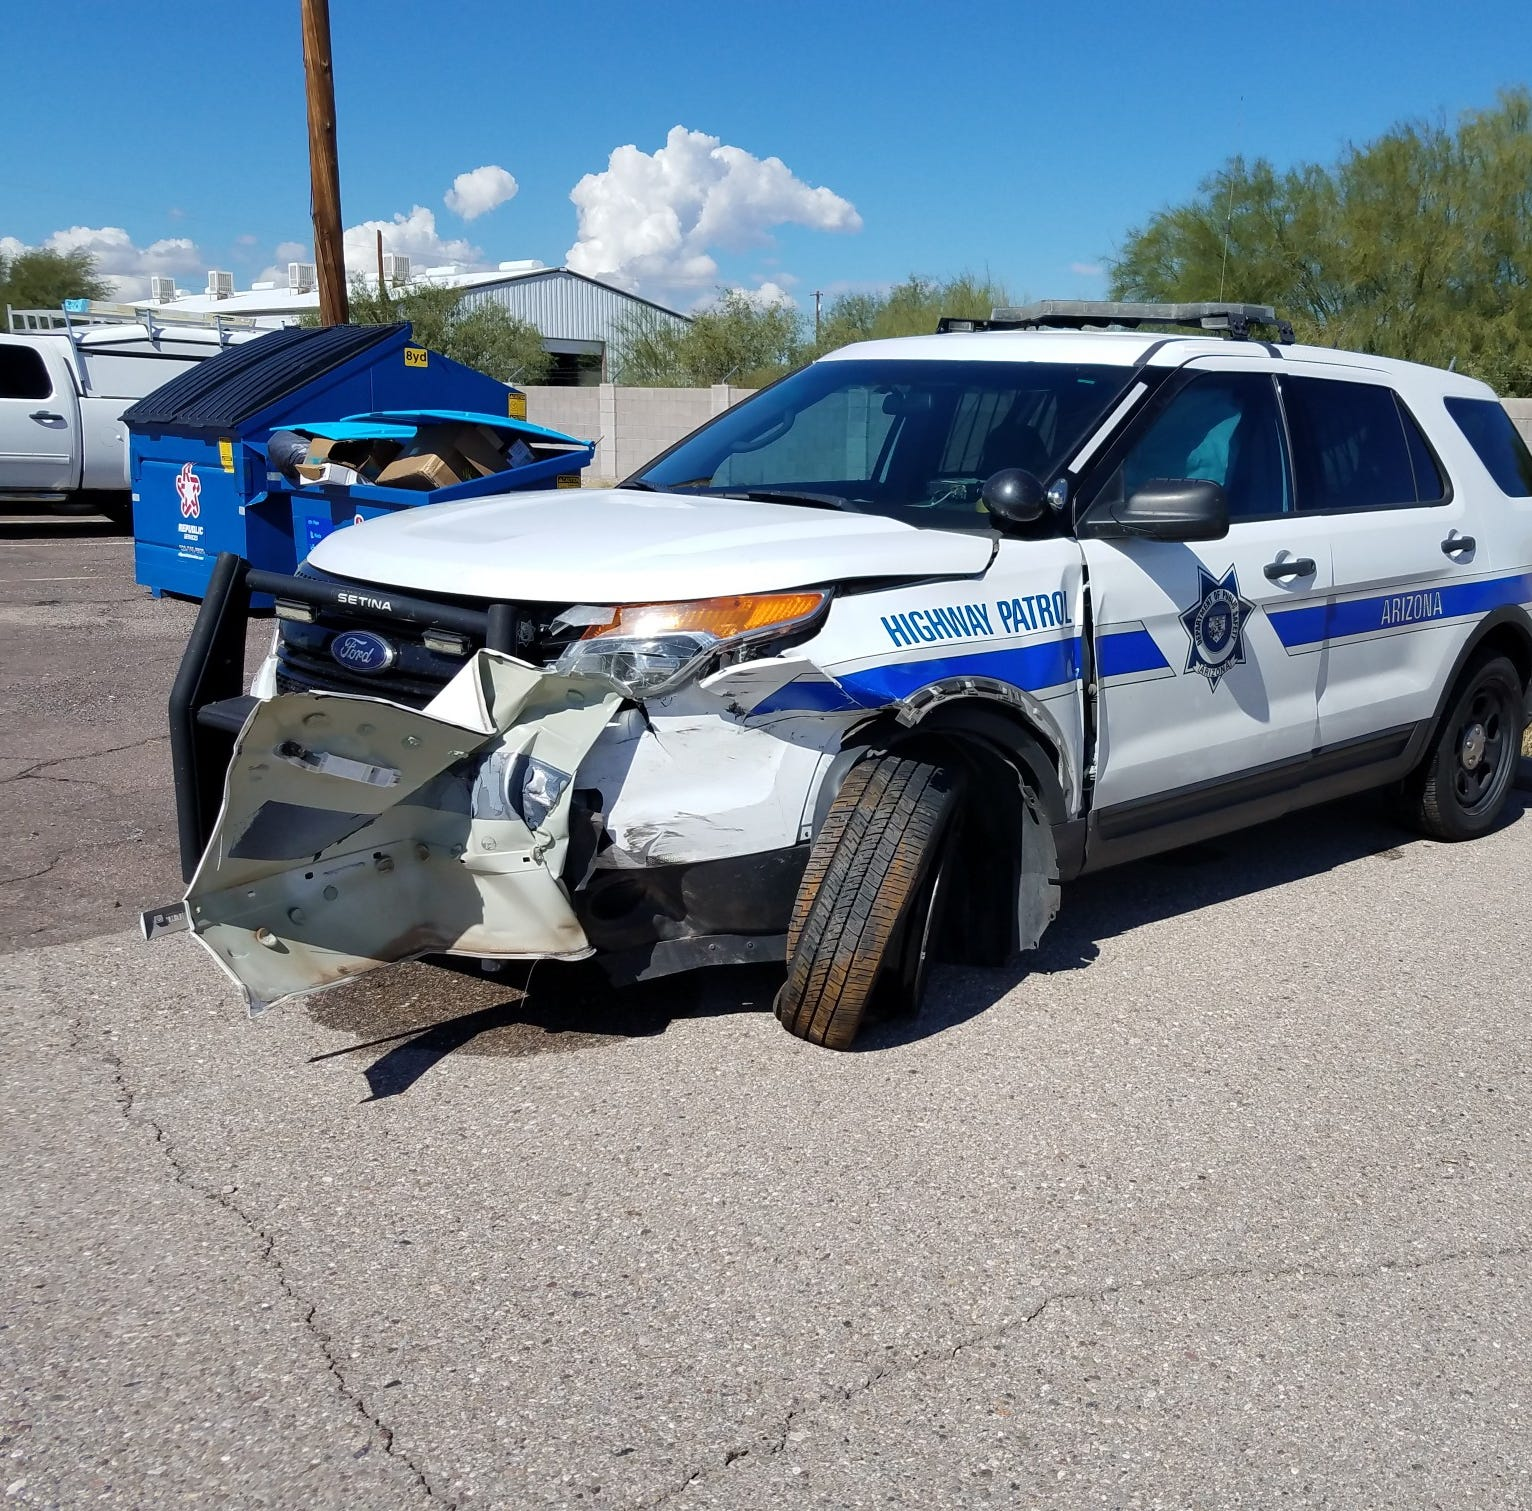 DPS trooper intentionally crashes to stop wrong-way driver on Interstate 10